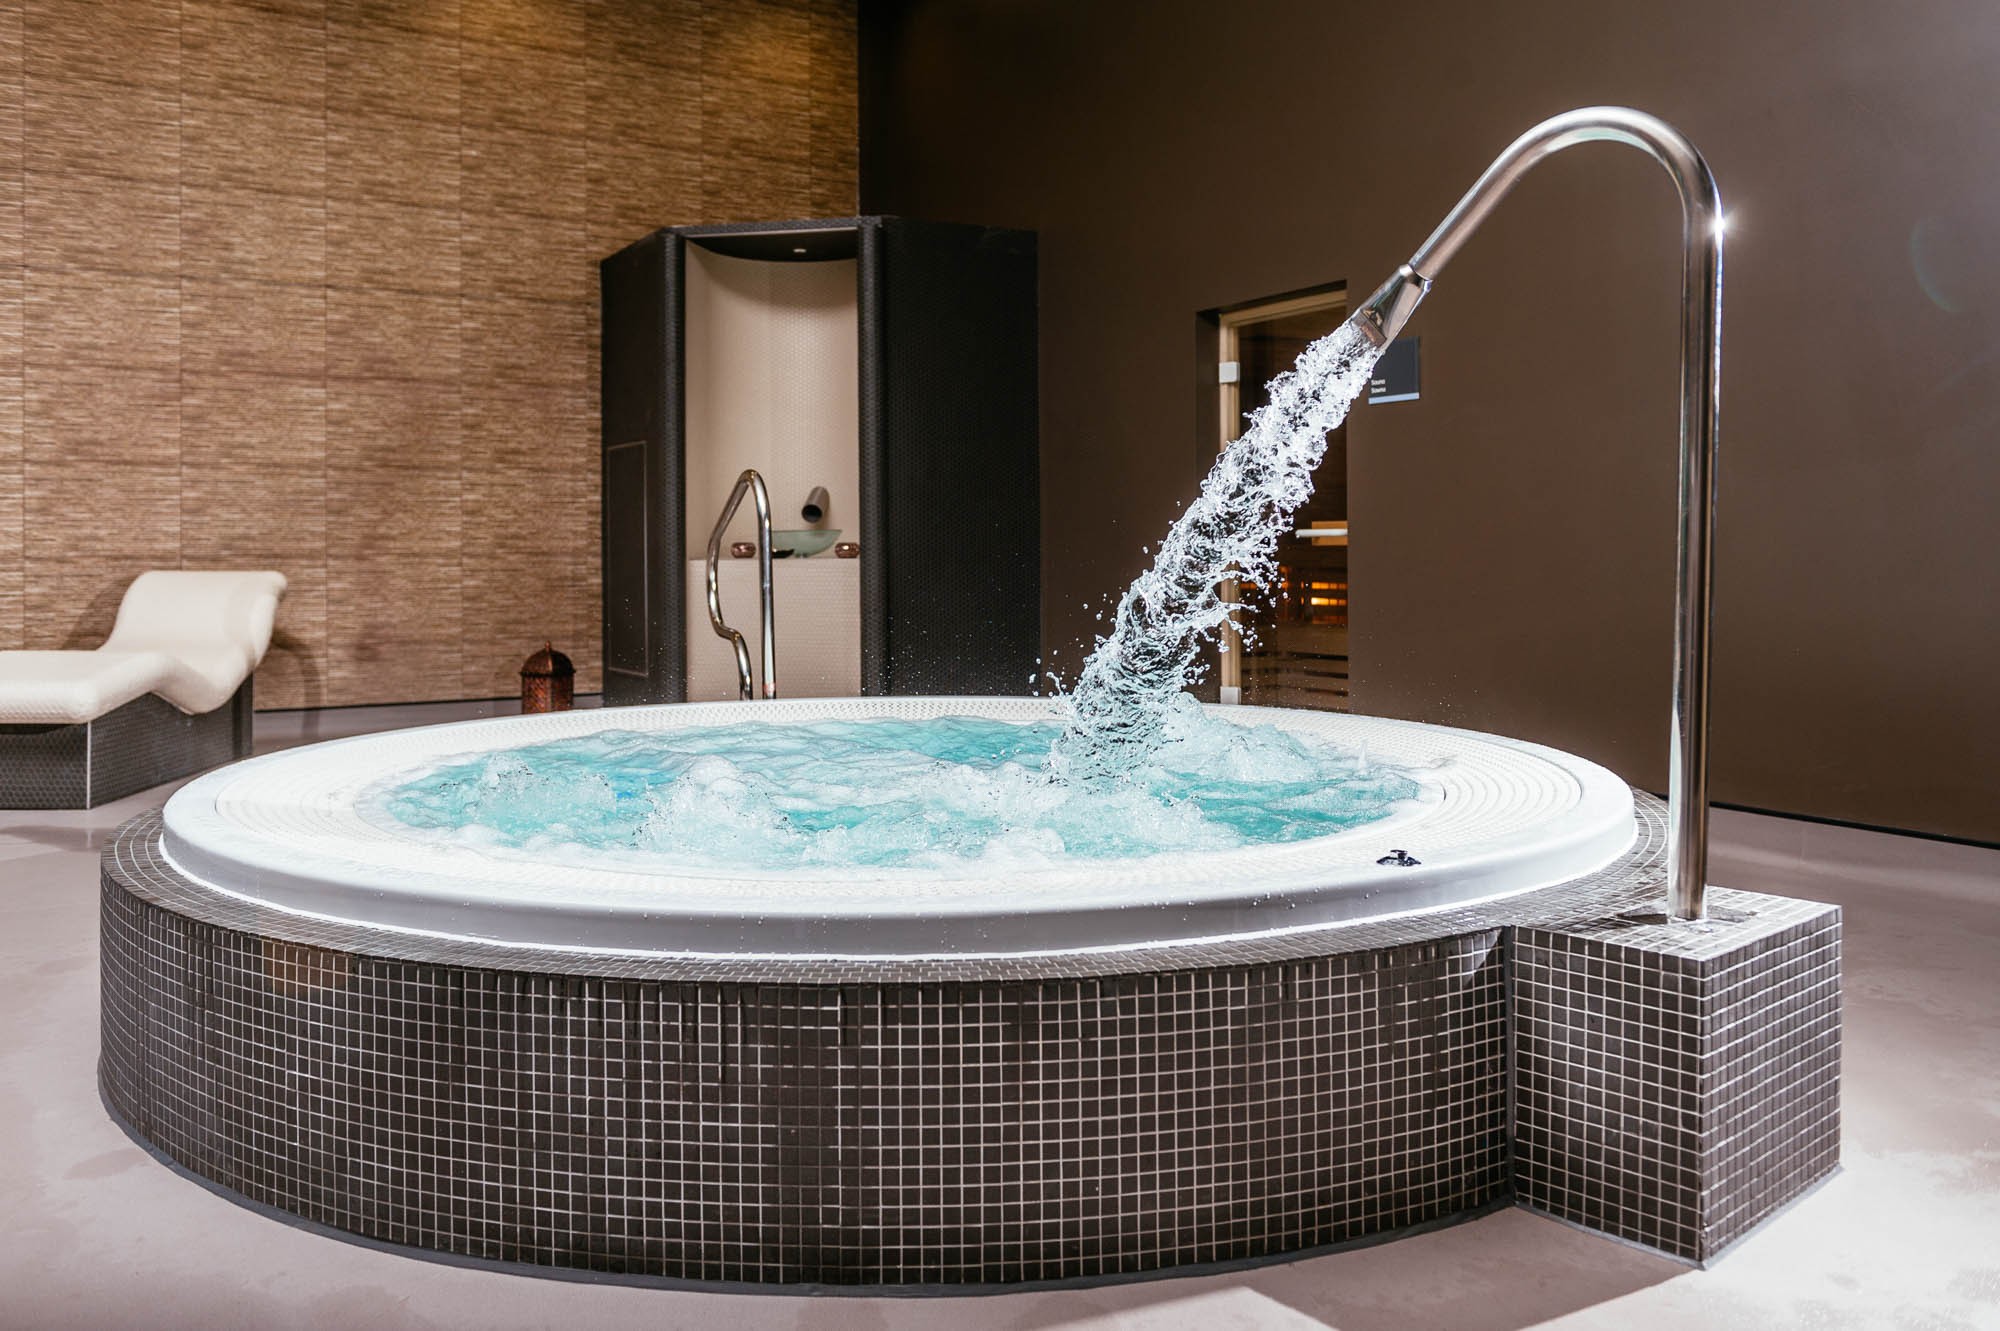 A photo of a spa venue with a hot tub and other relaxing treatments